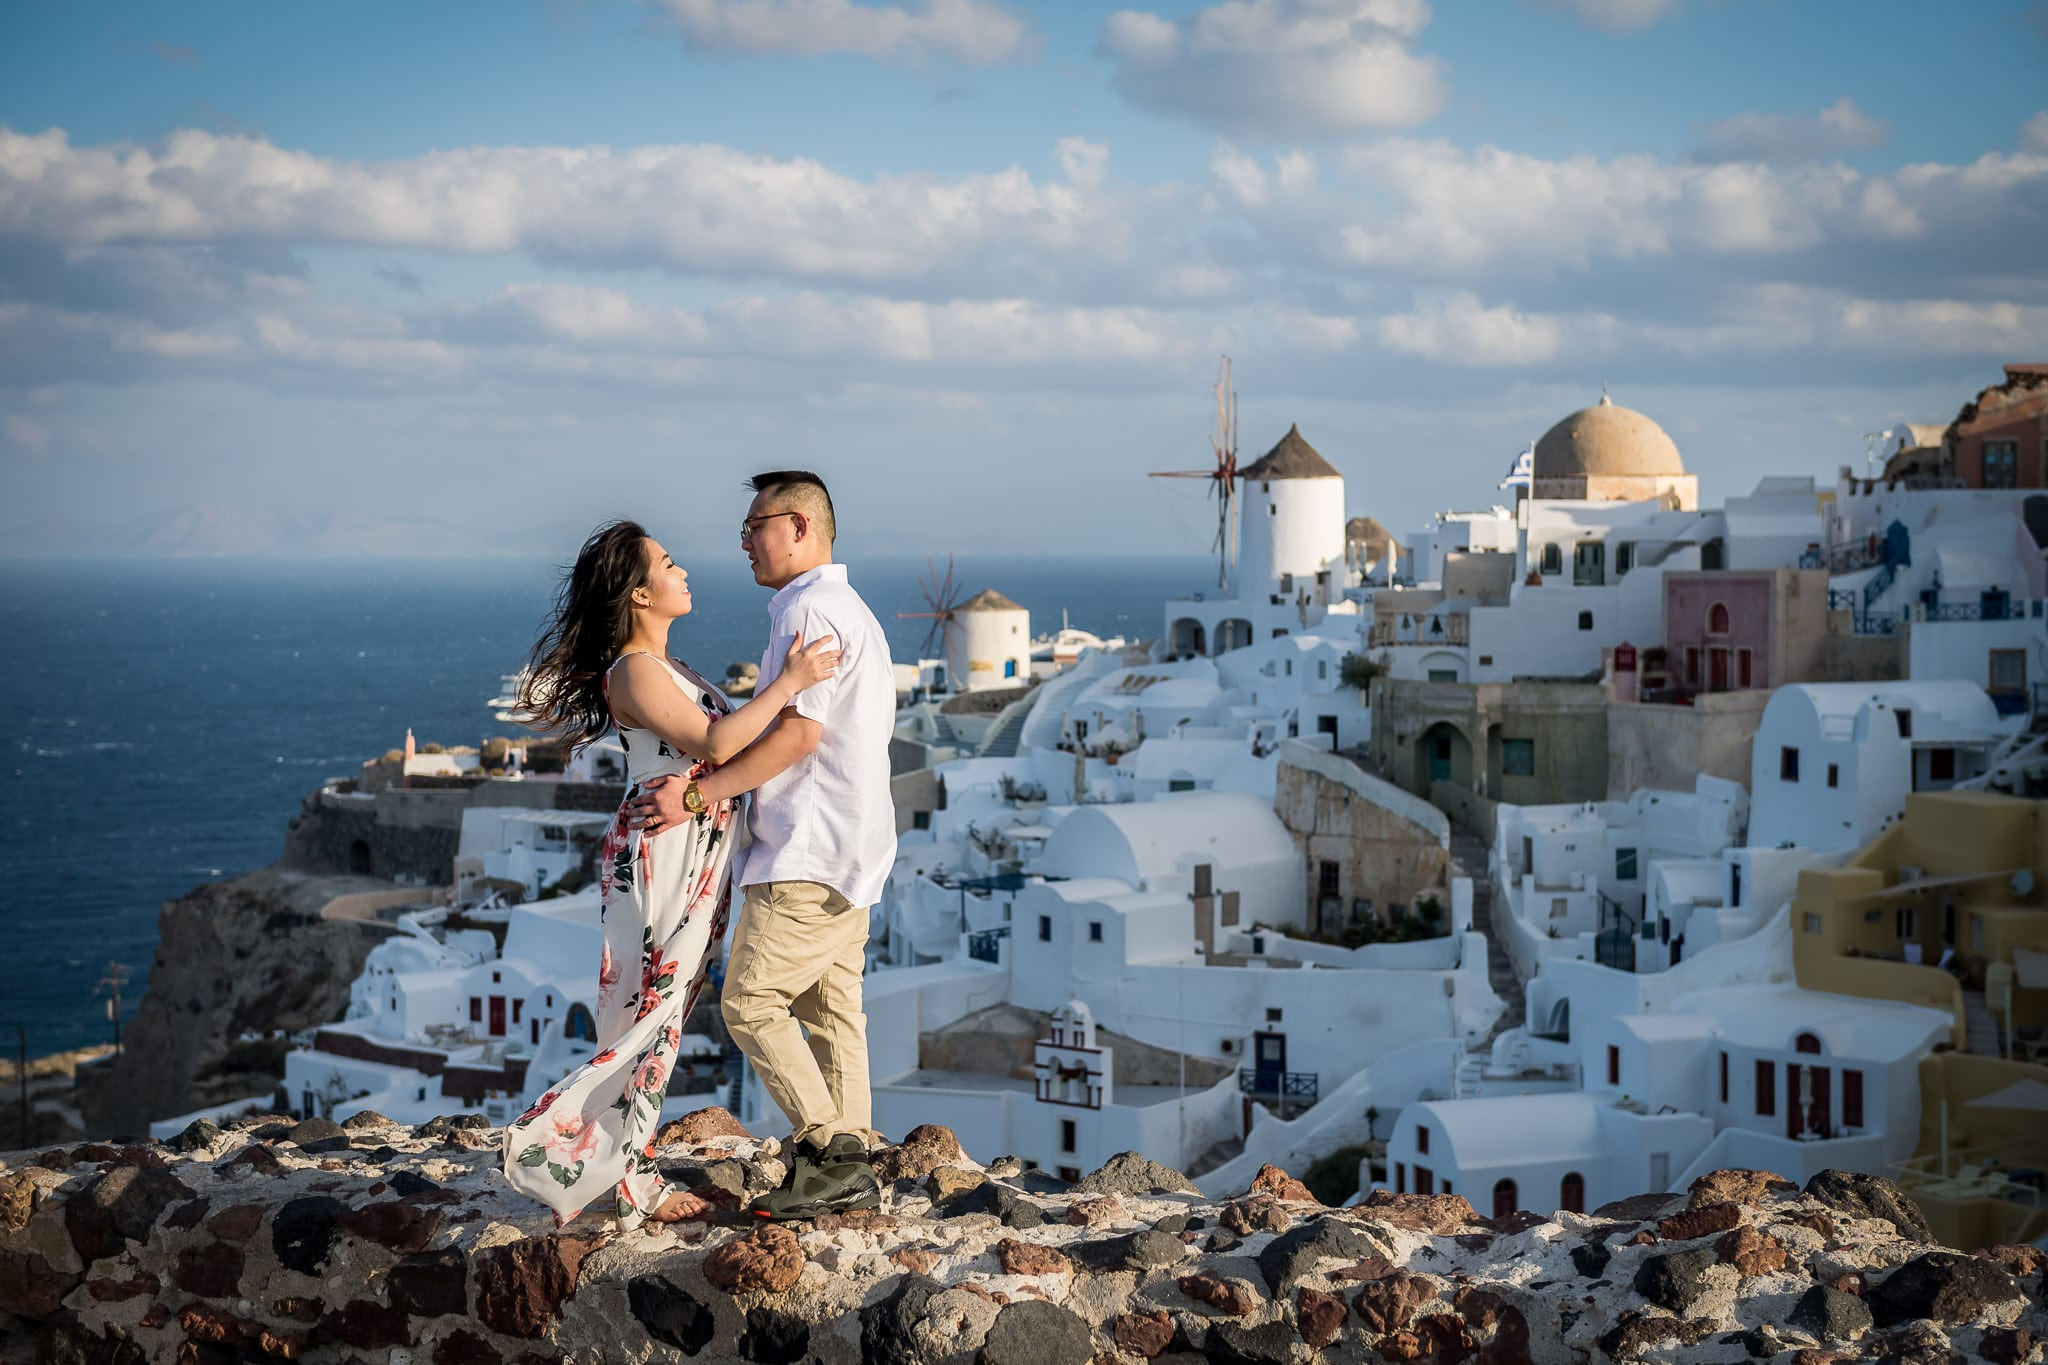 Honeymoon couple standing on a stone wall of the Oia Castle, during sunrise, high above the colorful Santorini island village of Oia, with the iconic windmill in the background